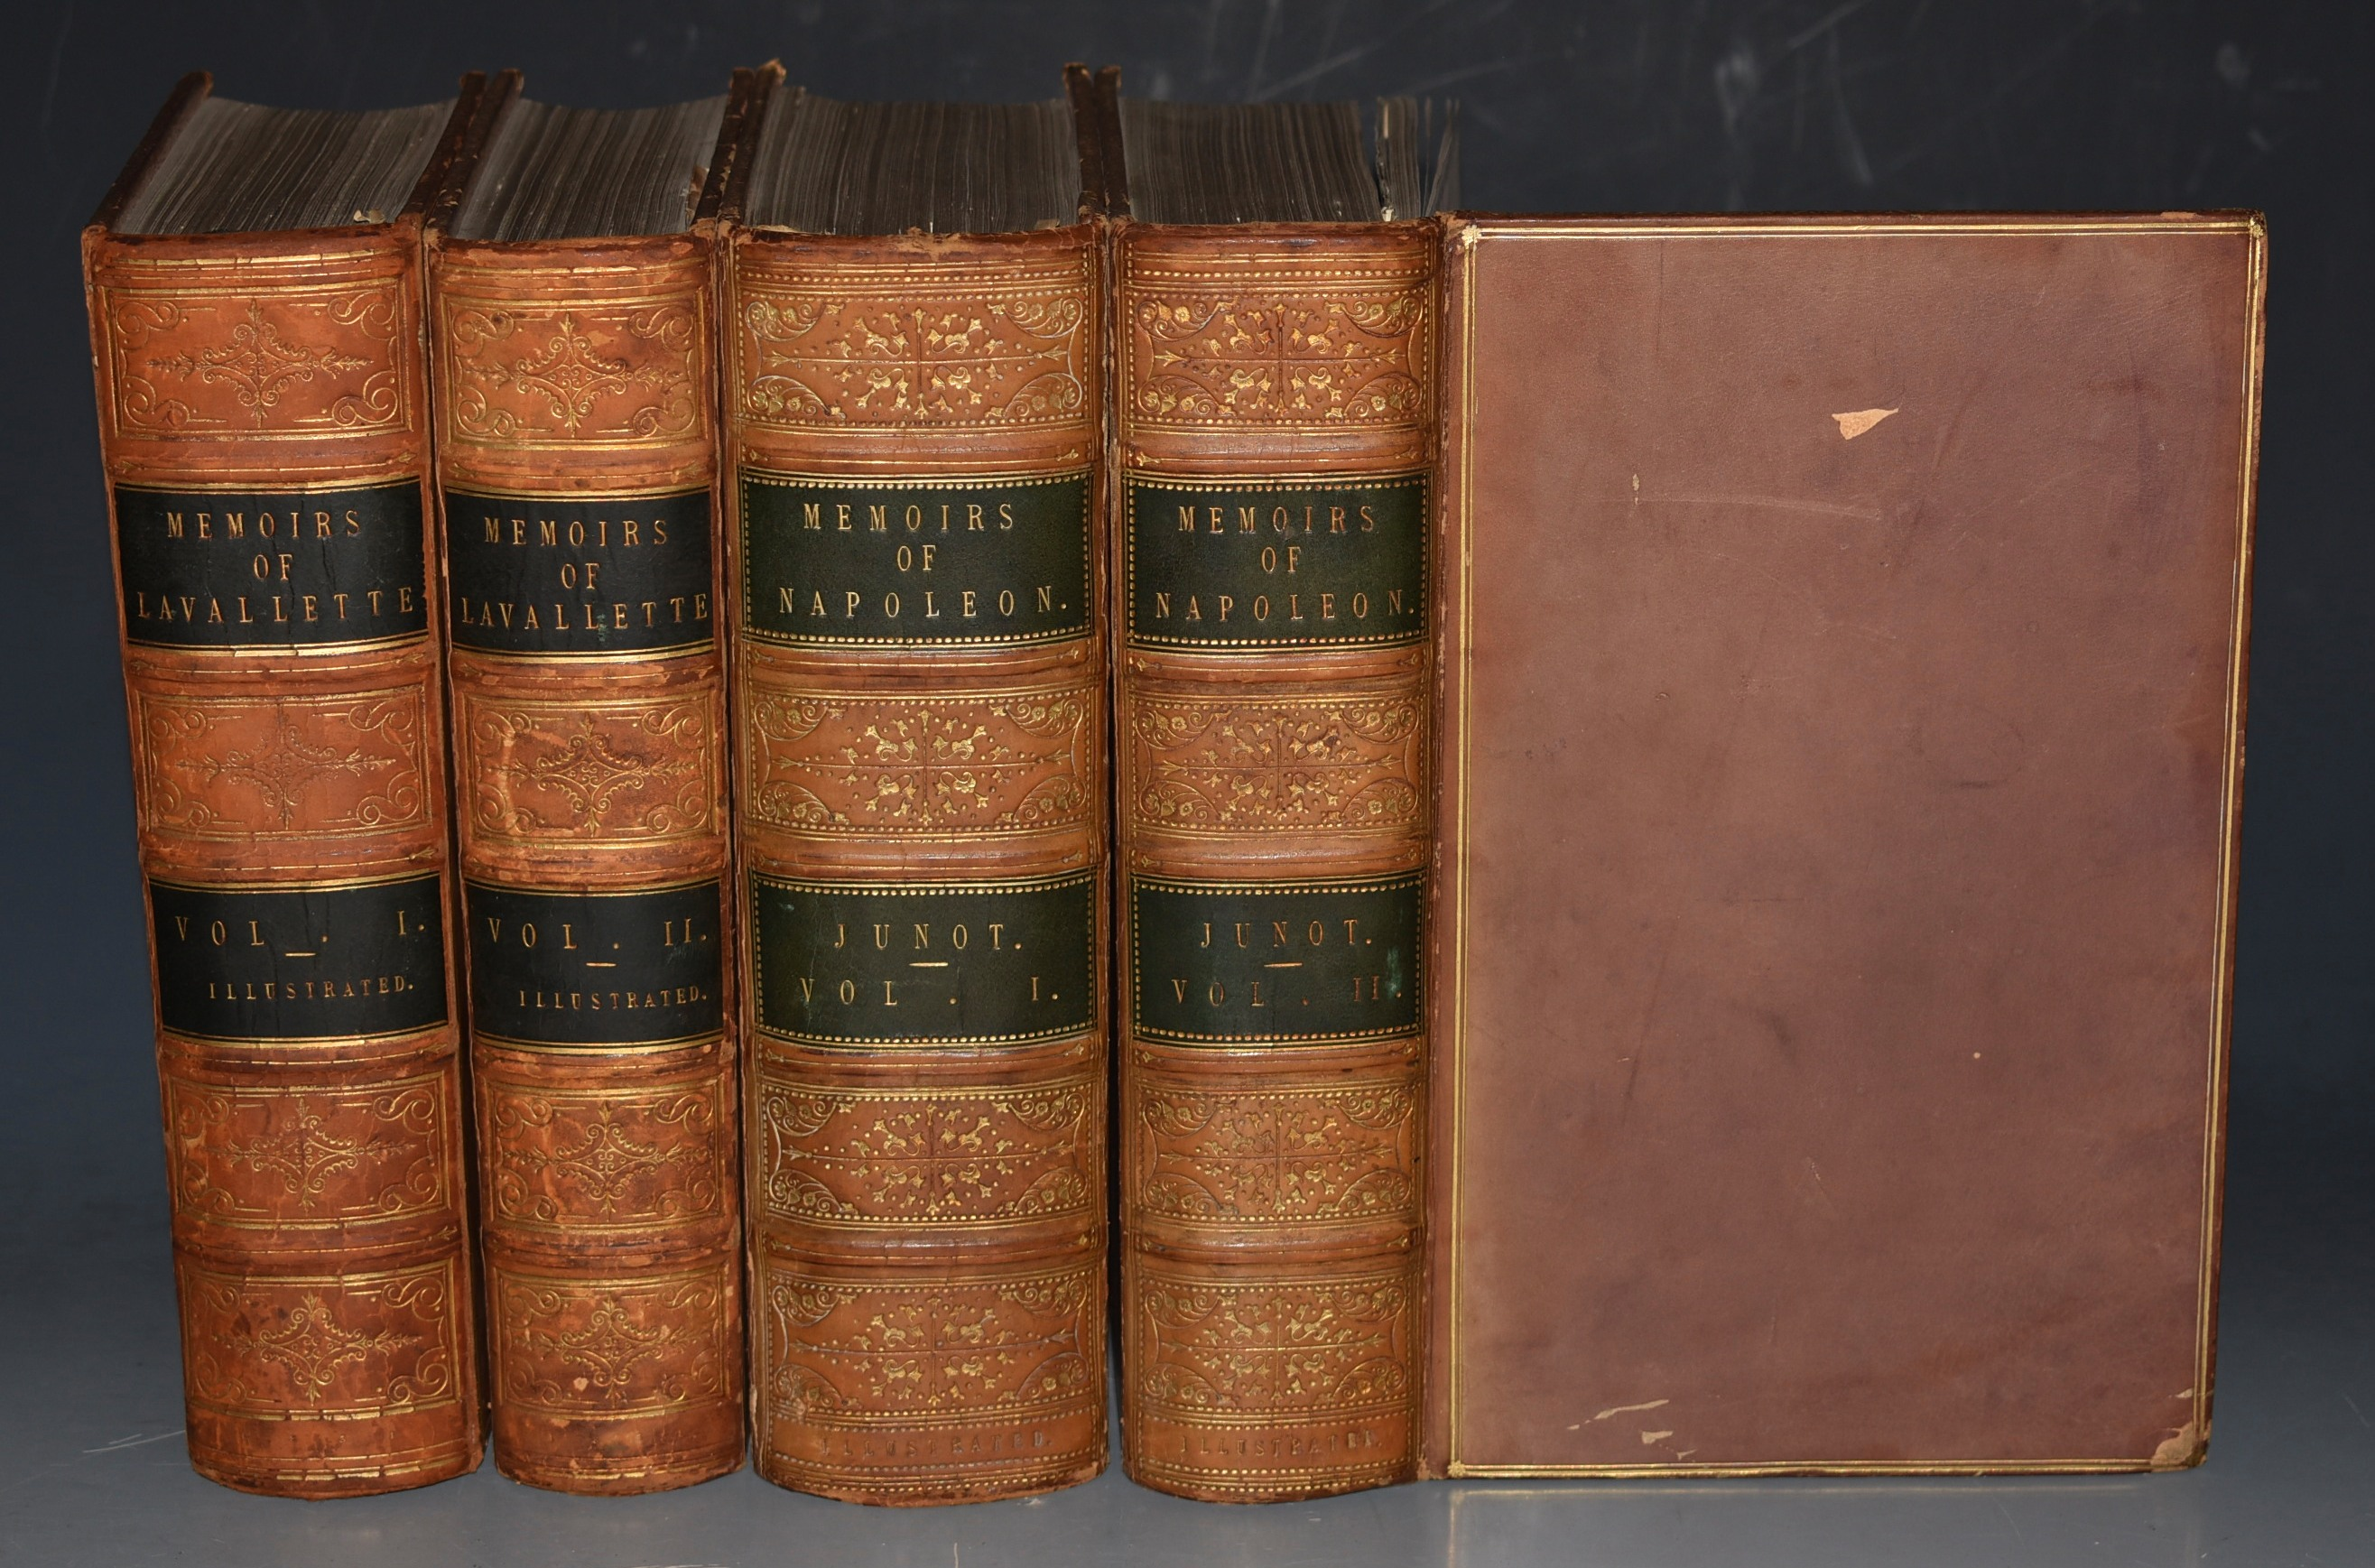 Image for Memoirs Of Count Lavallette AND Memoirs of Napoleon. Four Volumes. (Two Vols each. ) Presentation Copies - Inscribed by Richard Bentley to William Upcott.